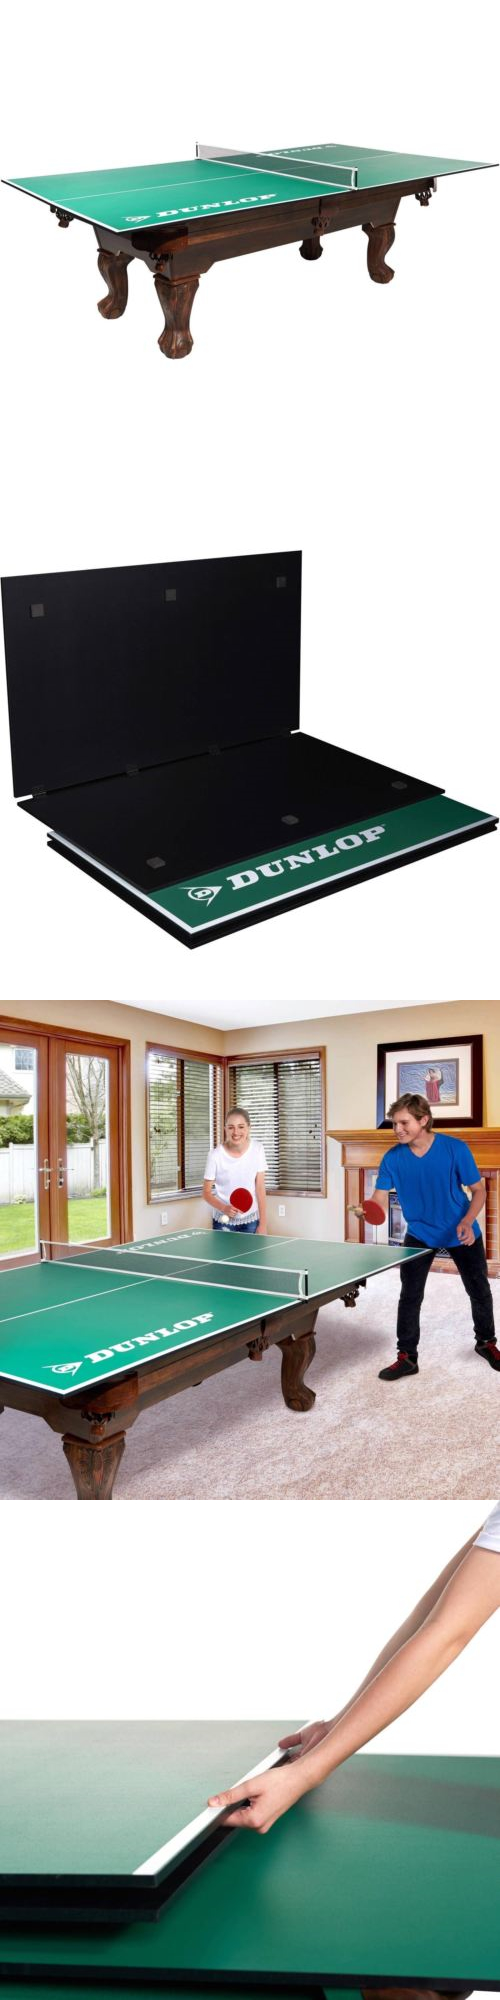 Tables 97075: Conversion Top Tennis Table Ping Pong Billiard Pool Game  Quick Set Portable New